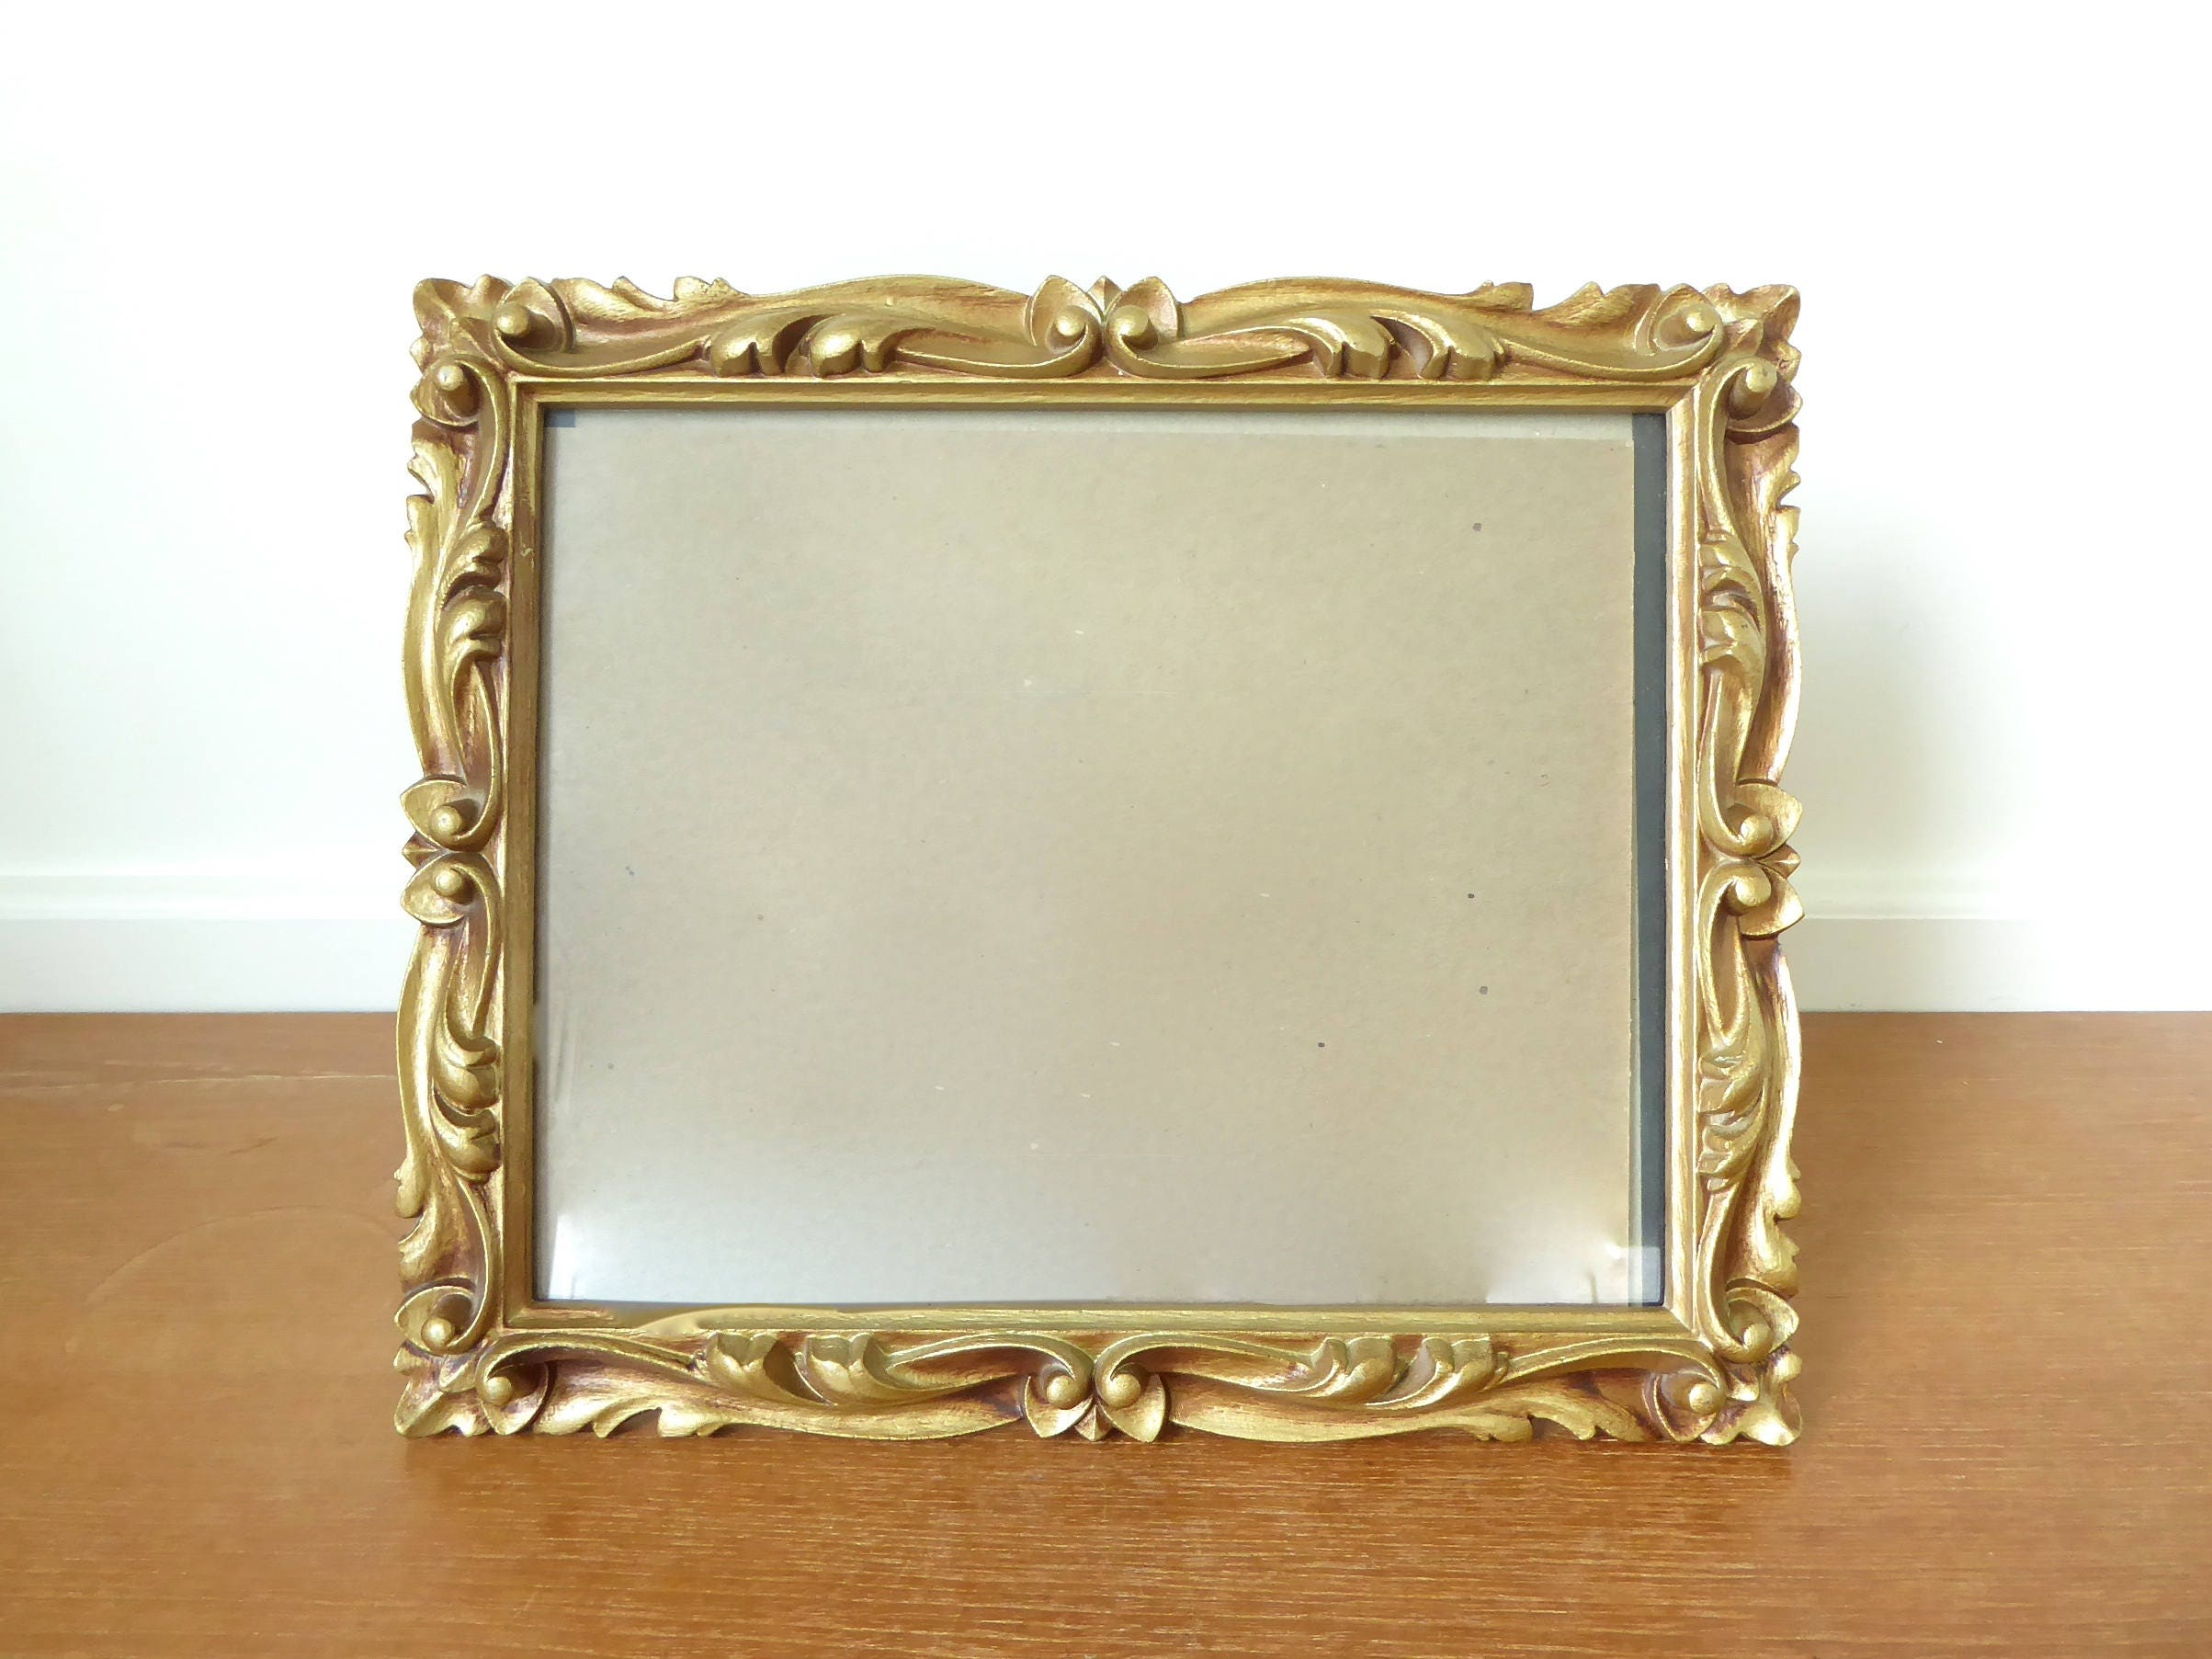 Carved wood look resin picture frame with sharp deep scrolled description this intricate carved wood look frame jeuxipadfo Image collections